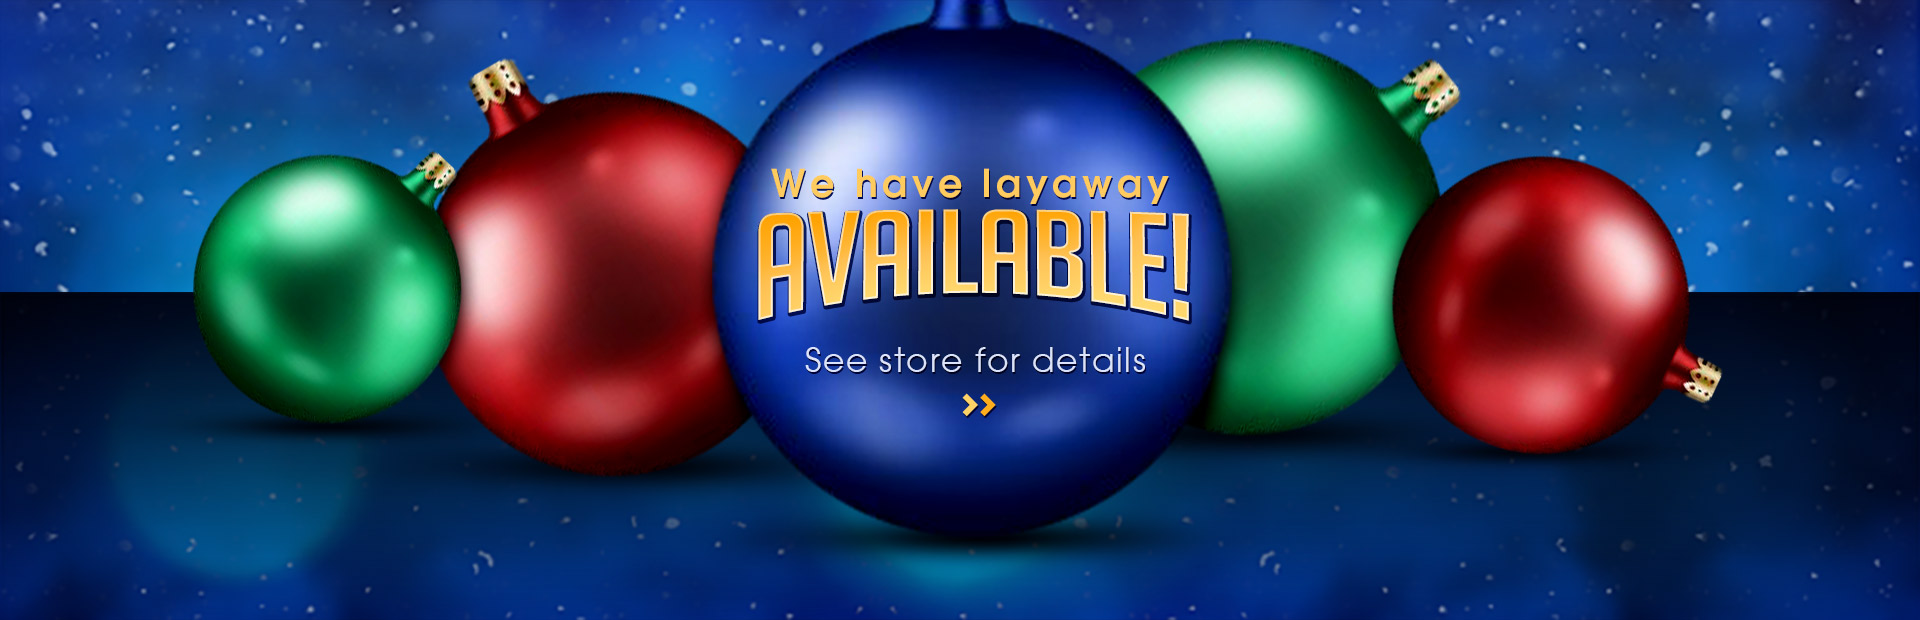 We have layaway available! See store for details.